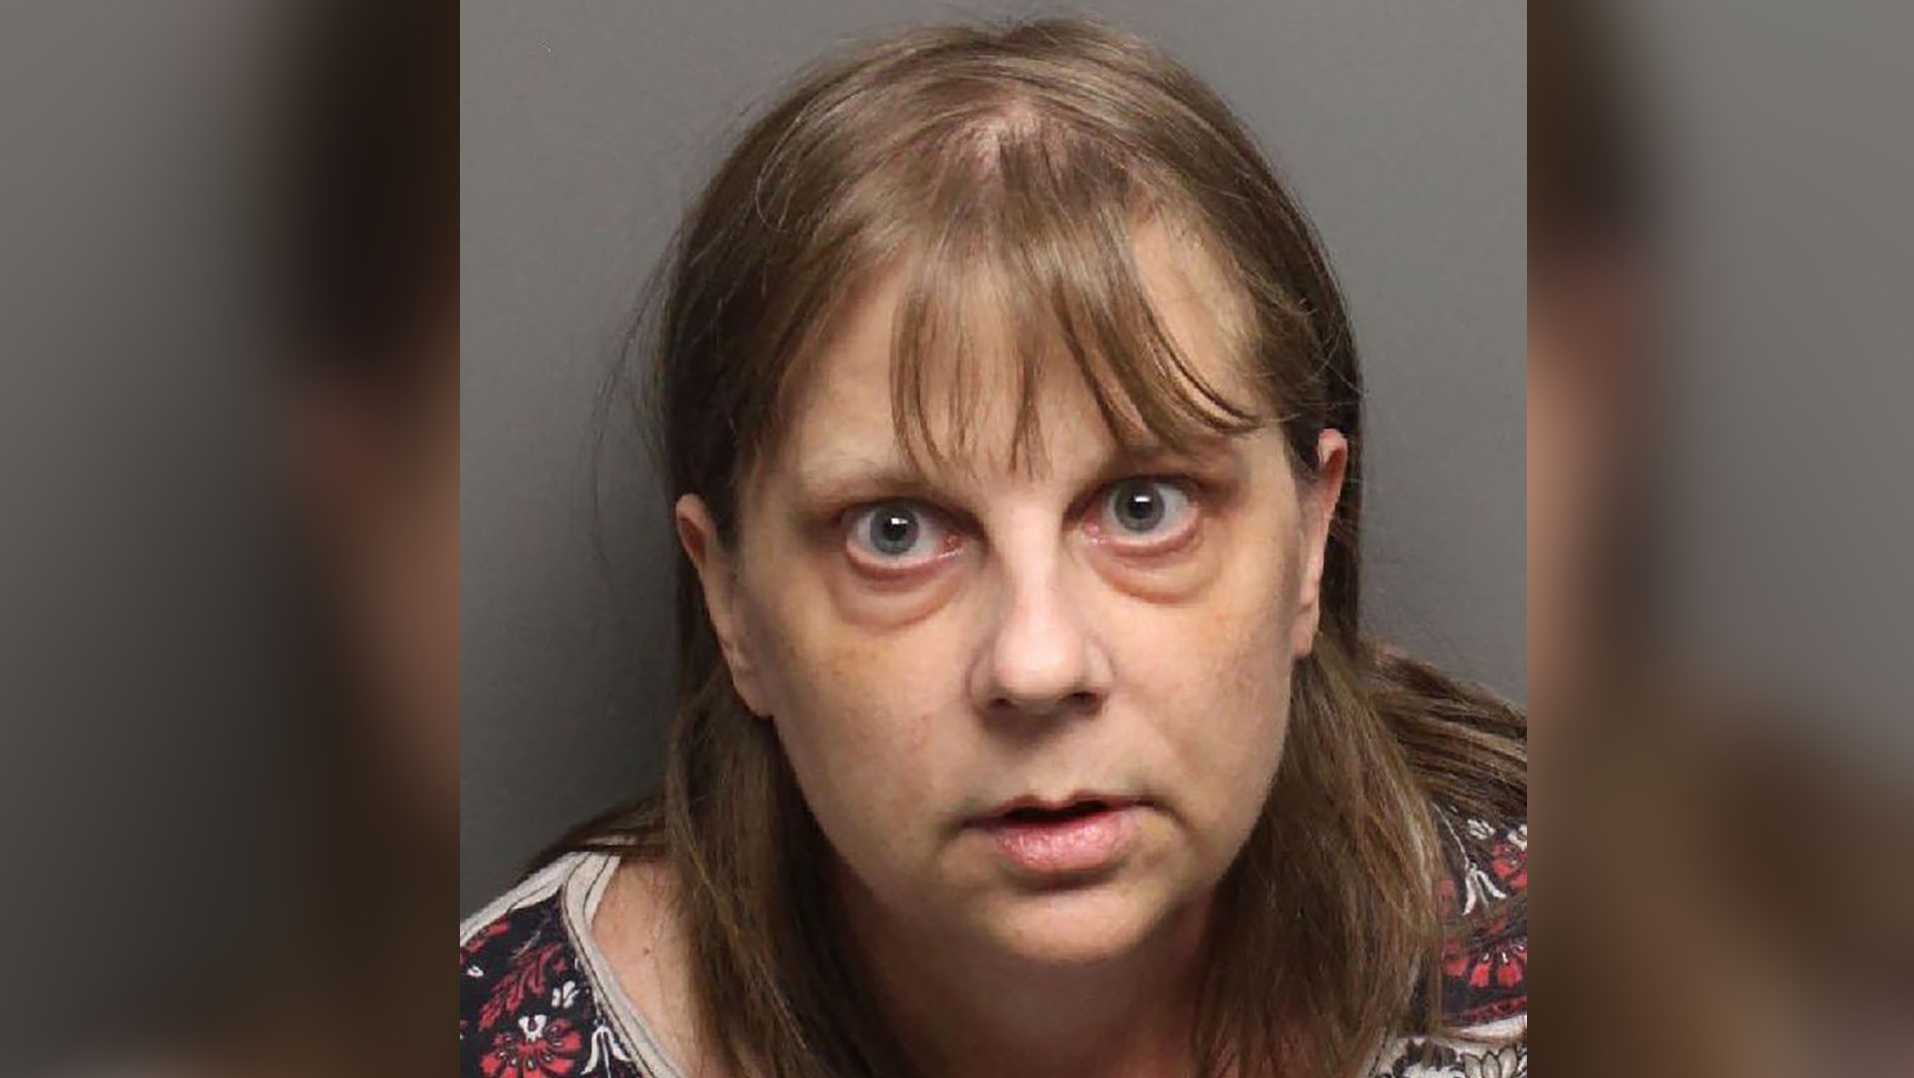 A 54-year-old Auburn woman was arrested after hitting a pedestrian in a parking lot Friday, the Auburn Department of Public Safety said.